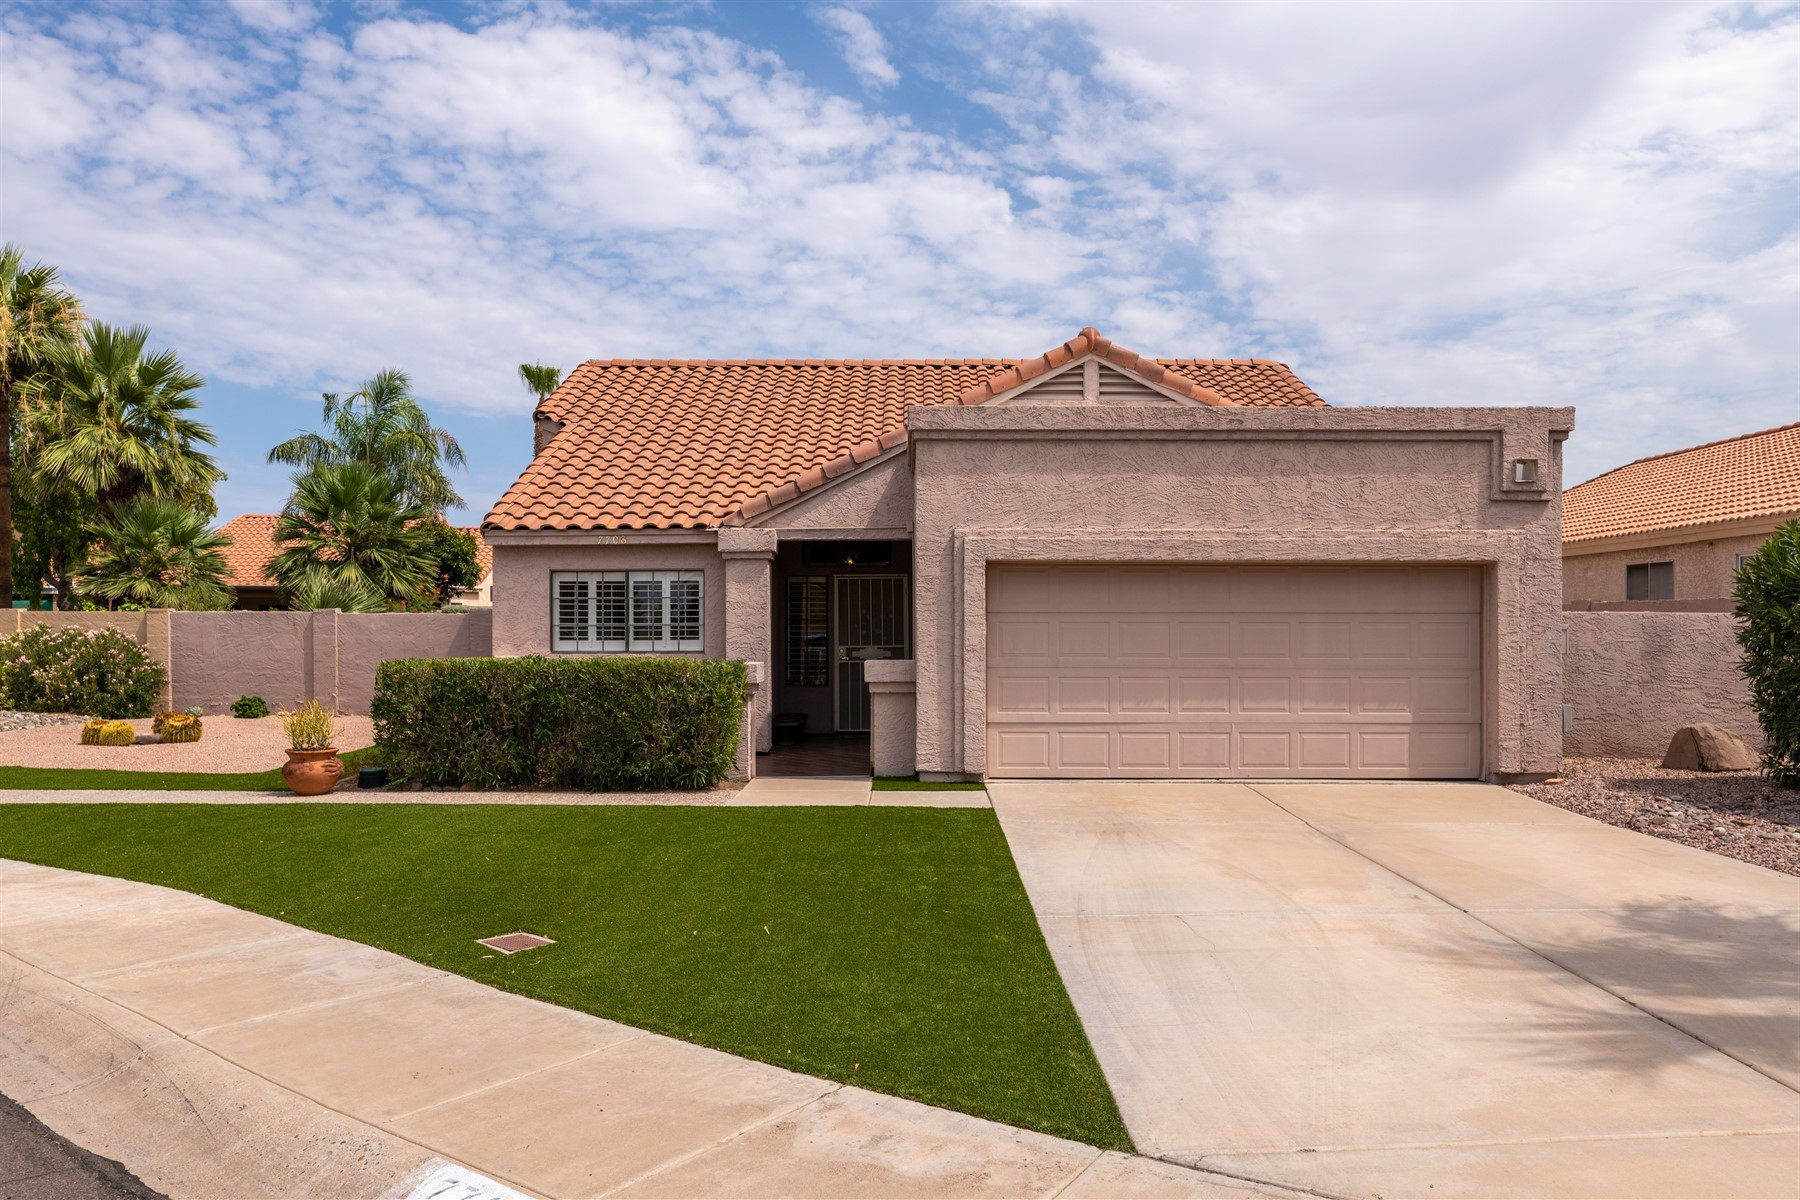 Single Family Homes for Active at Arrowhead Ranch 7708 W MCRAE WAY Glendale, Arizona 85308 United States